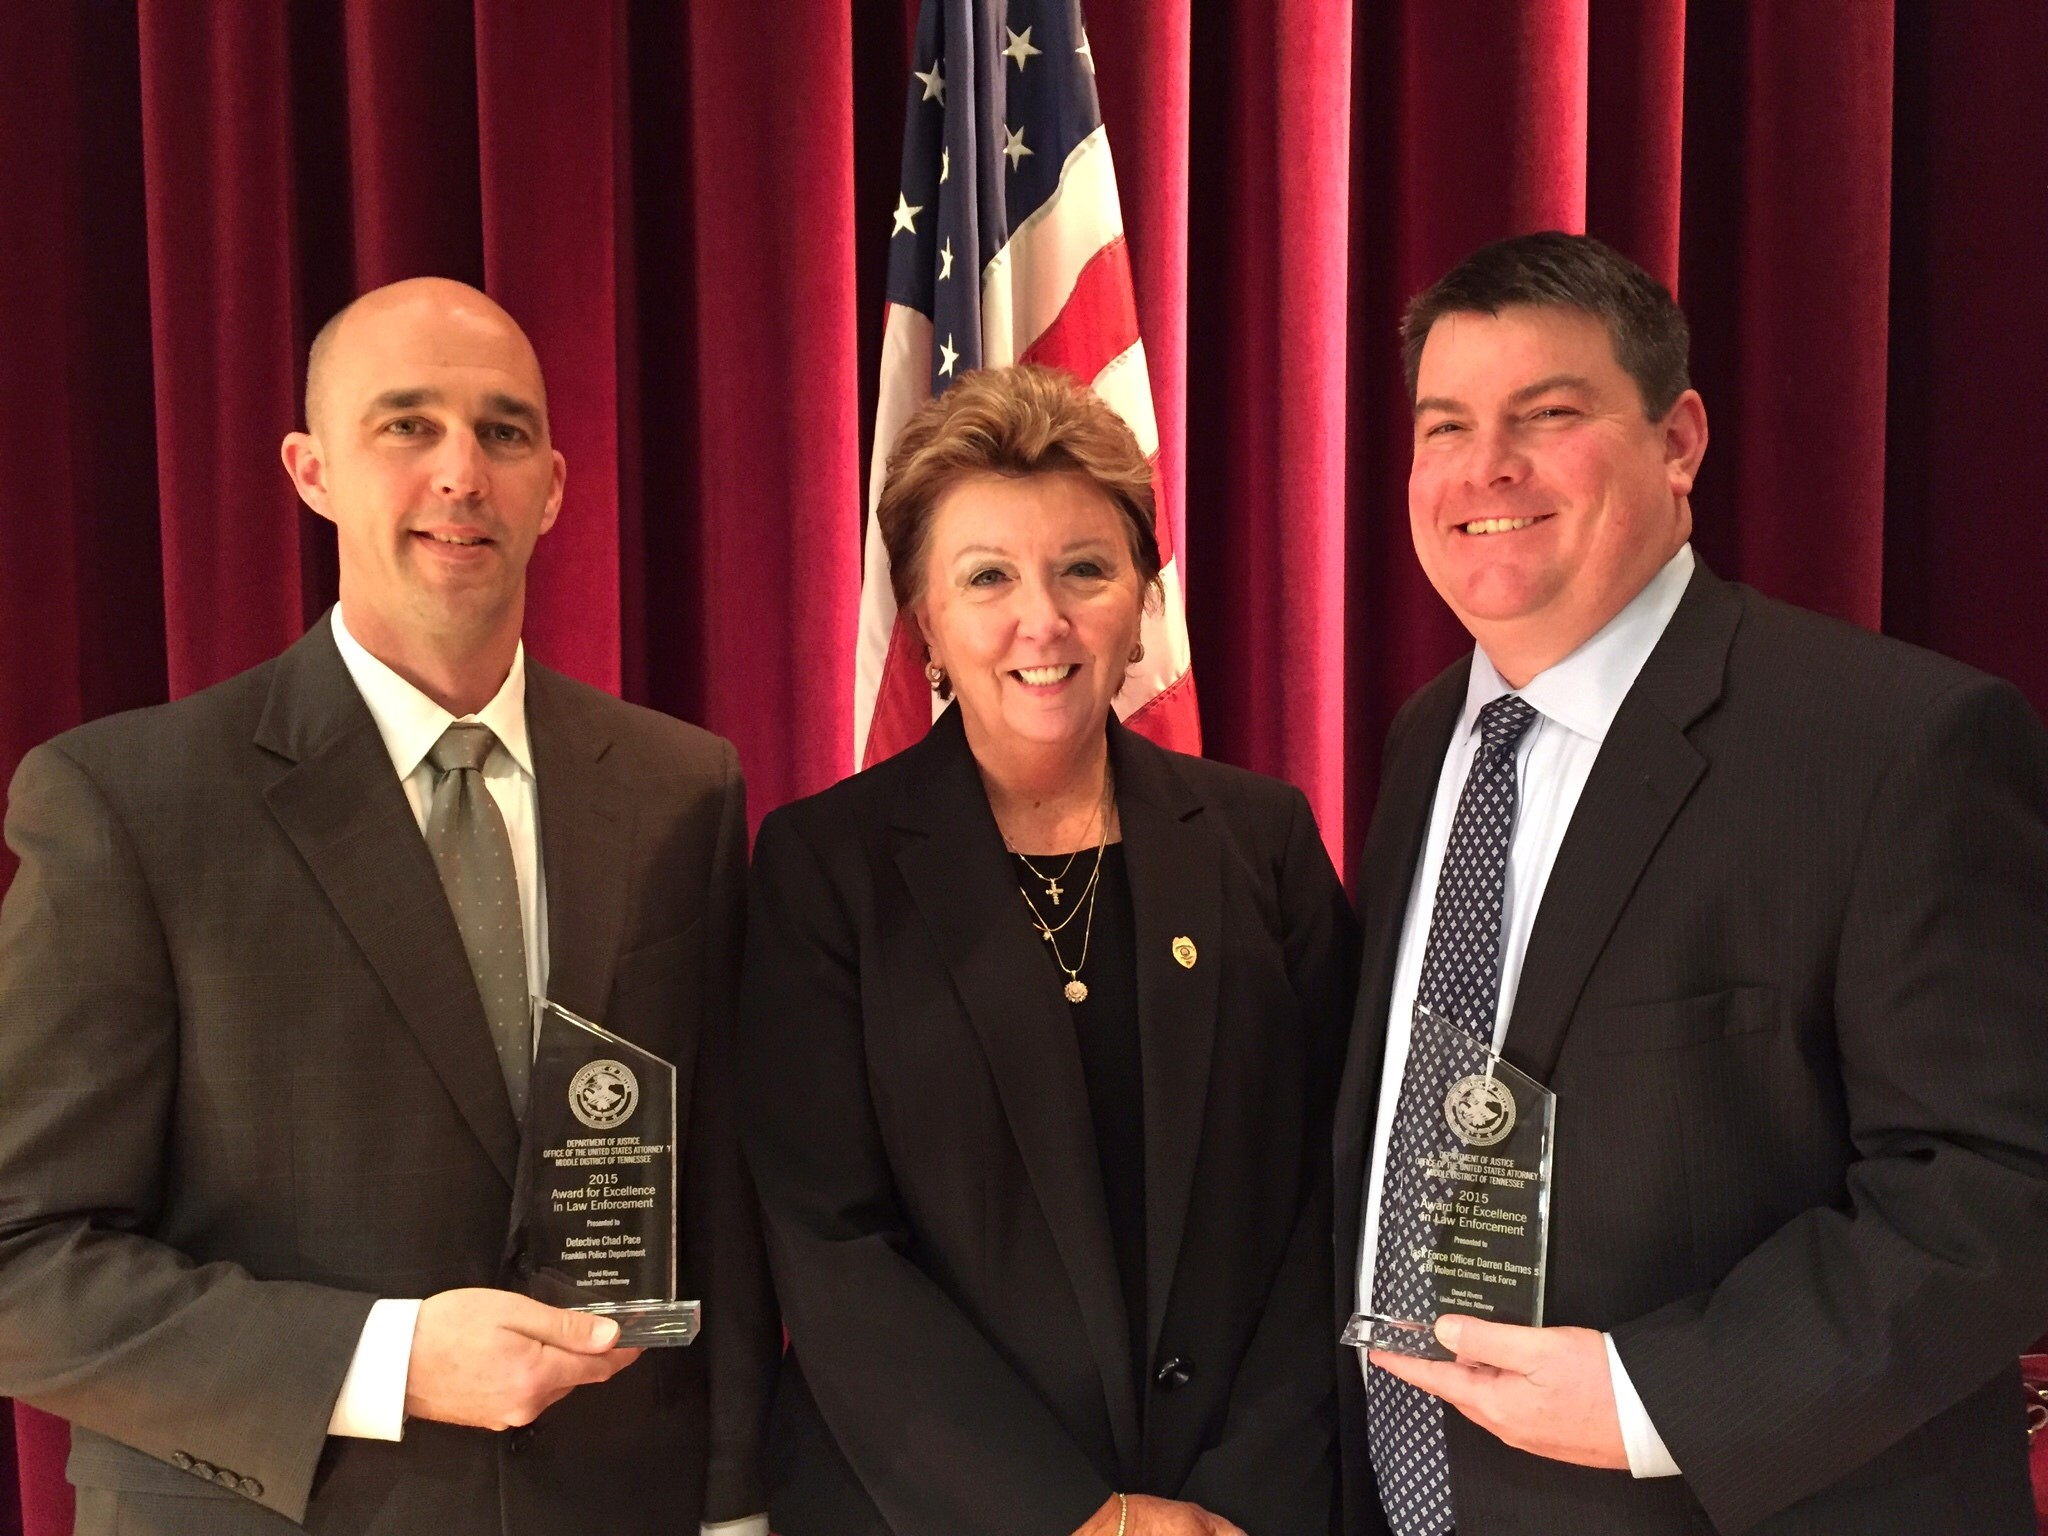 franklin police detectives among those honored by department ofchad pace, chief deborah faulkner, det darren barnes